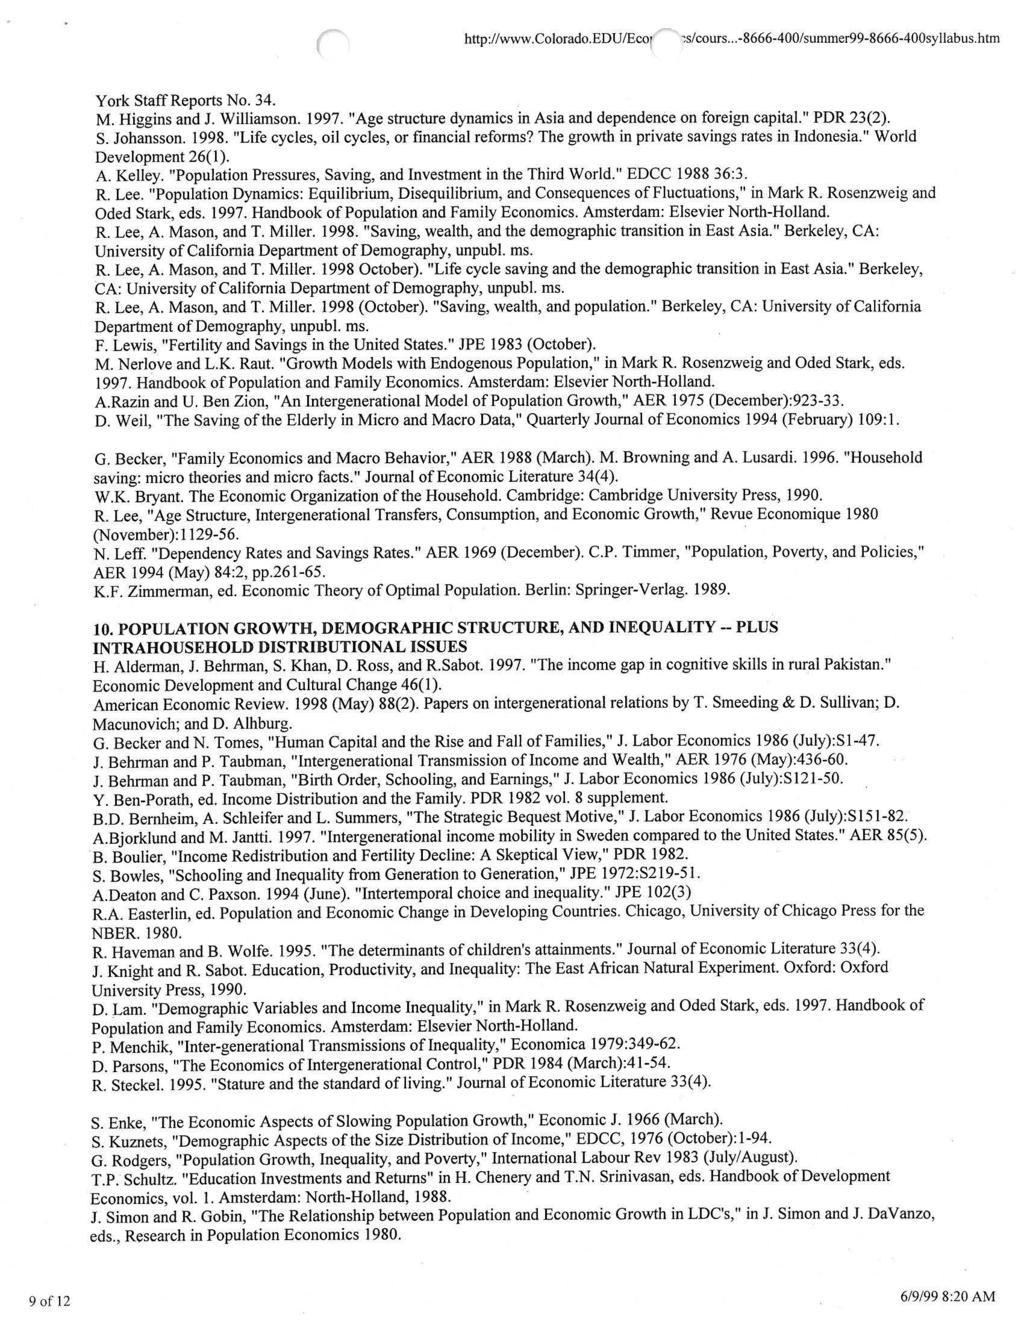 http://www.colorado.edu/eco1 ~s/cours... -8666-400/summer99-8666-400syllabus.htm York Staff Reports No. 34. M. Higgins and J. Williamson. 1997.